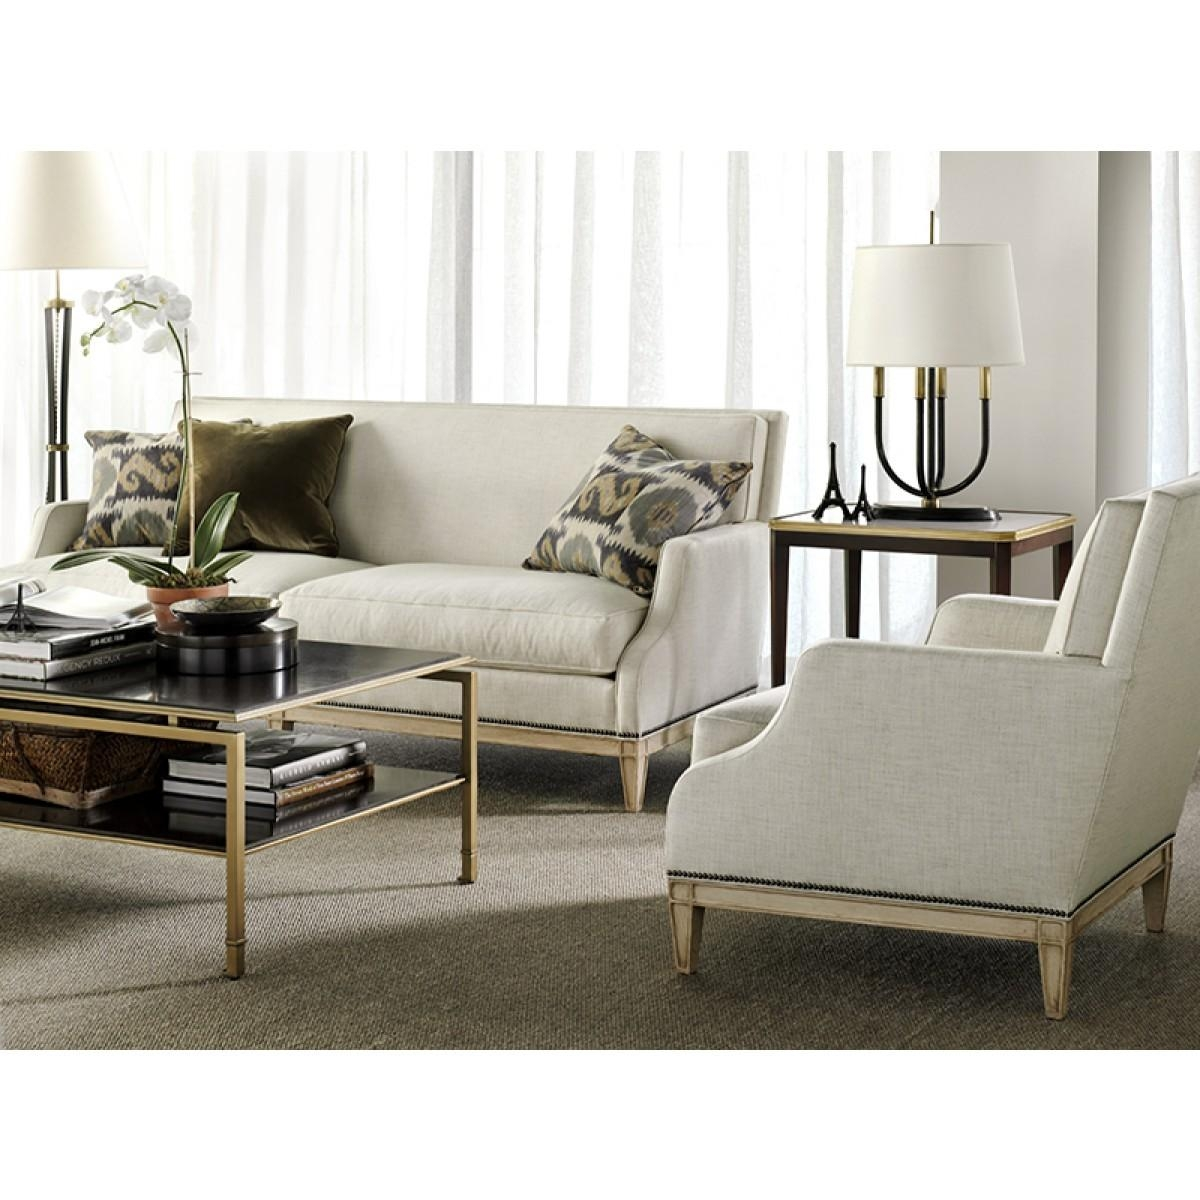 Chair Suzanne Kasler Monroe Sofa Throughout Chair Sofas (Photo 22 of 22)